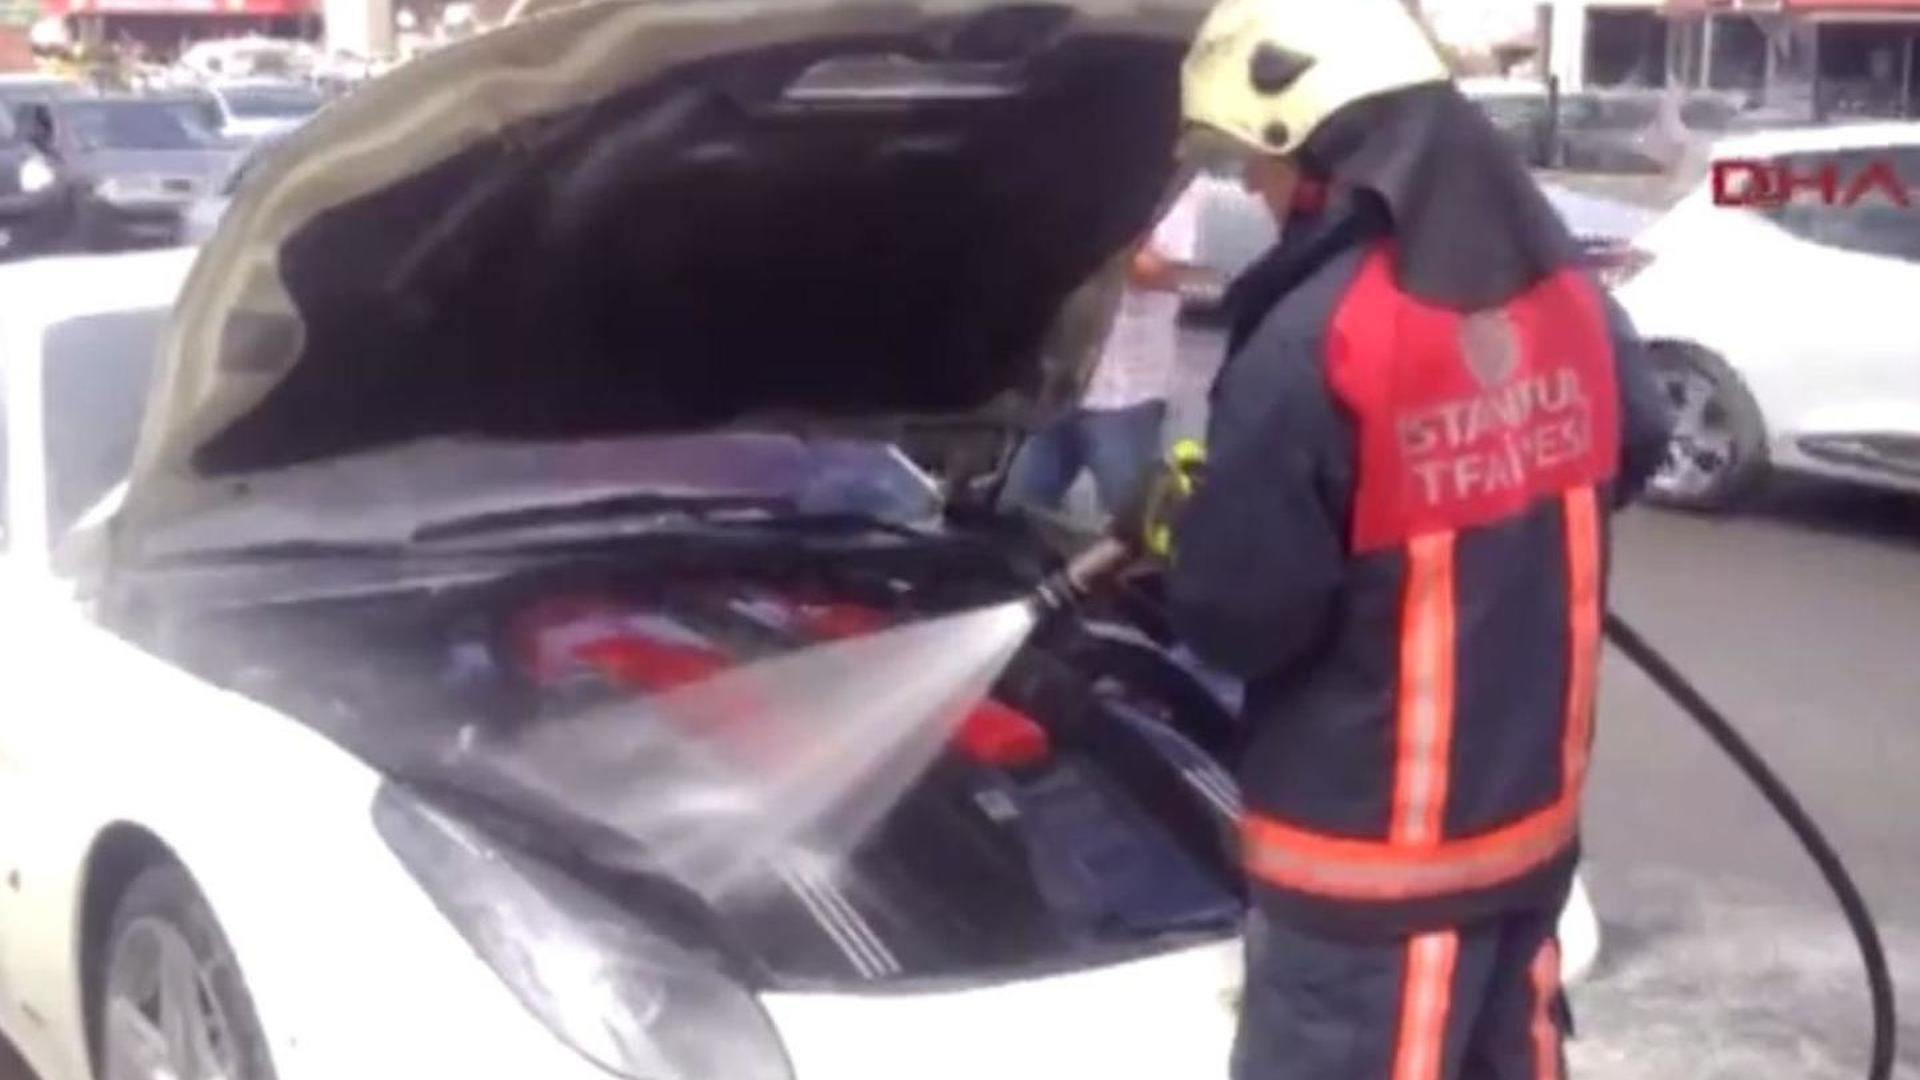 Ferrari F12 Berlinetta catches engine fire in Turkey